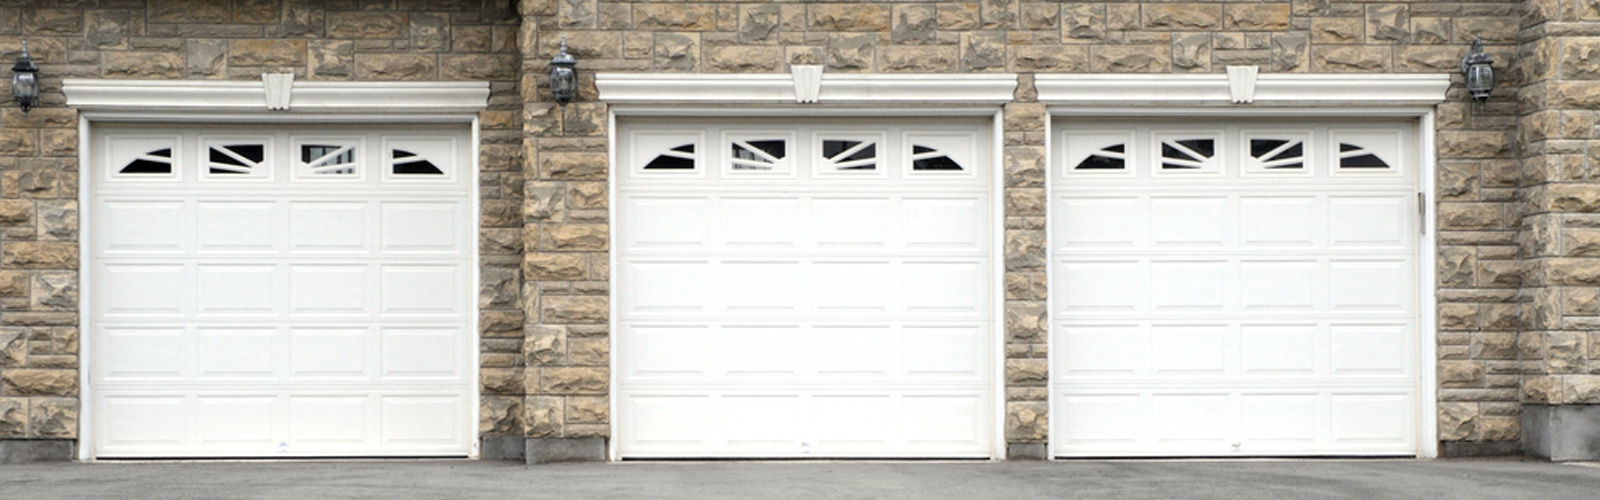 igd renton garage door repair call 425 533 0350